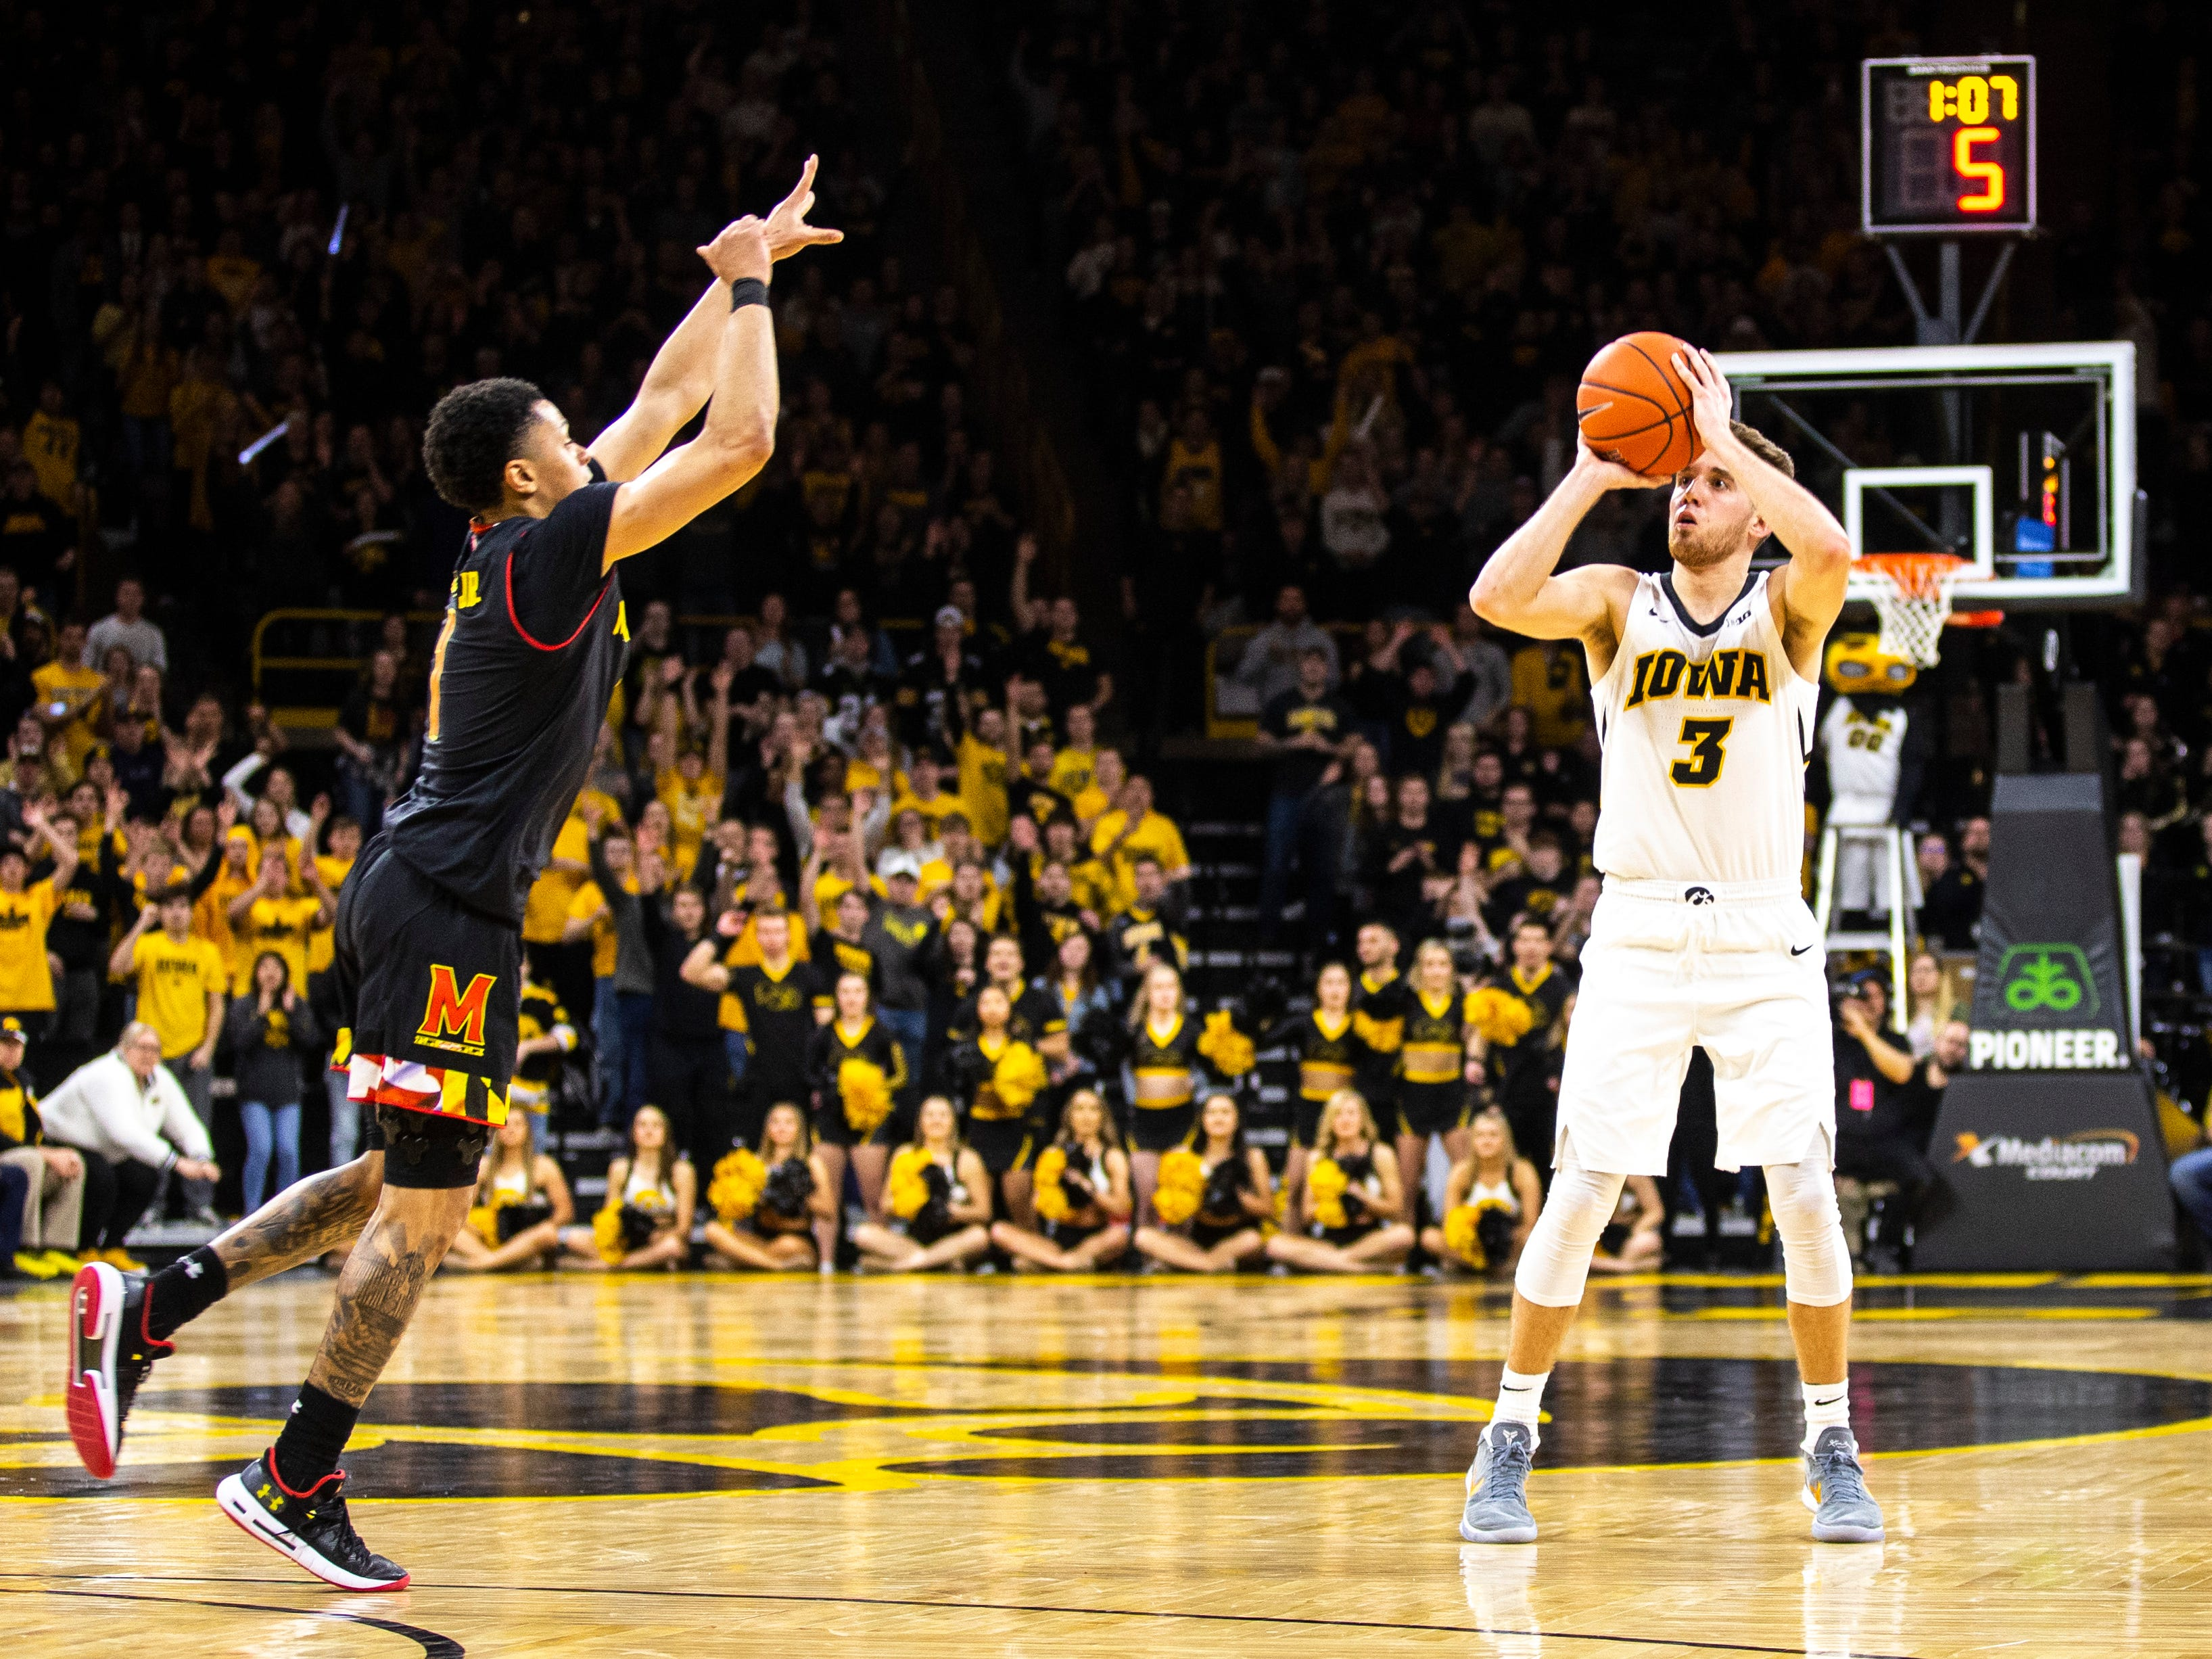 Iowa guard Jordan Bohannon (3) attempts a 3-point basket while Maryland guard Anthony Cowan Jr. (1) defends during a NCAA Big Ten Conference men's basketball game on Tuesday, Feb. 19, 2019 at Carver-Hawkeye Arena in Iowa City, Iowa.